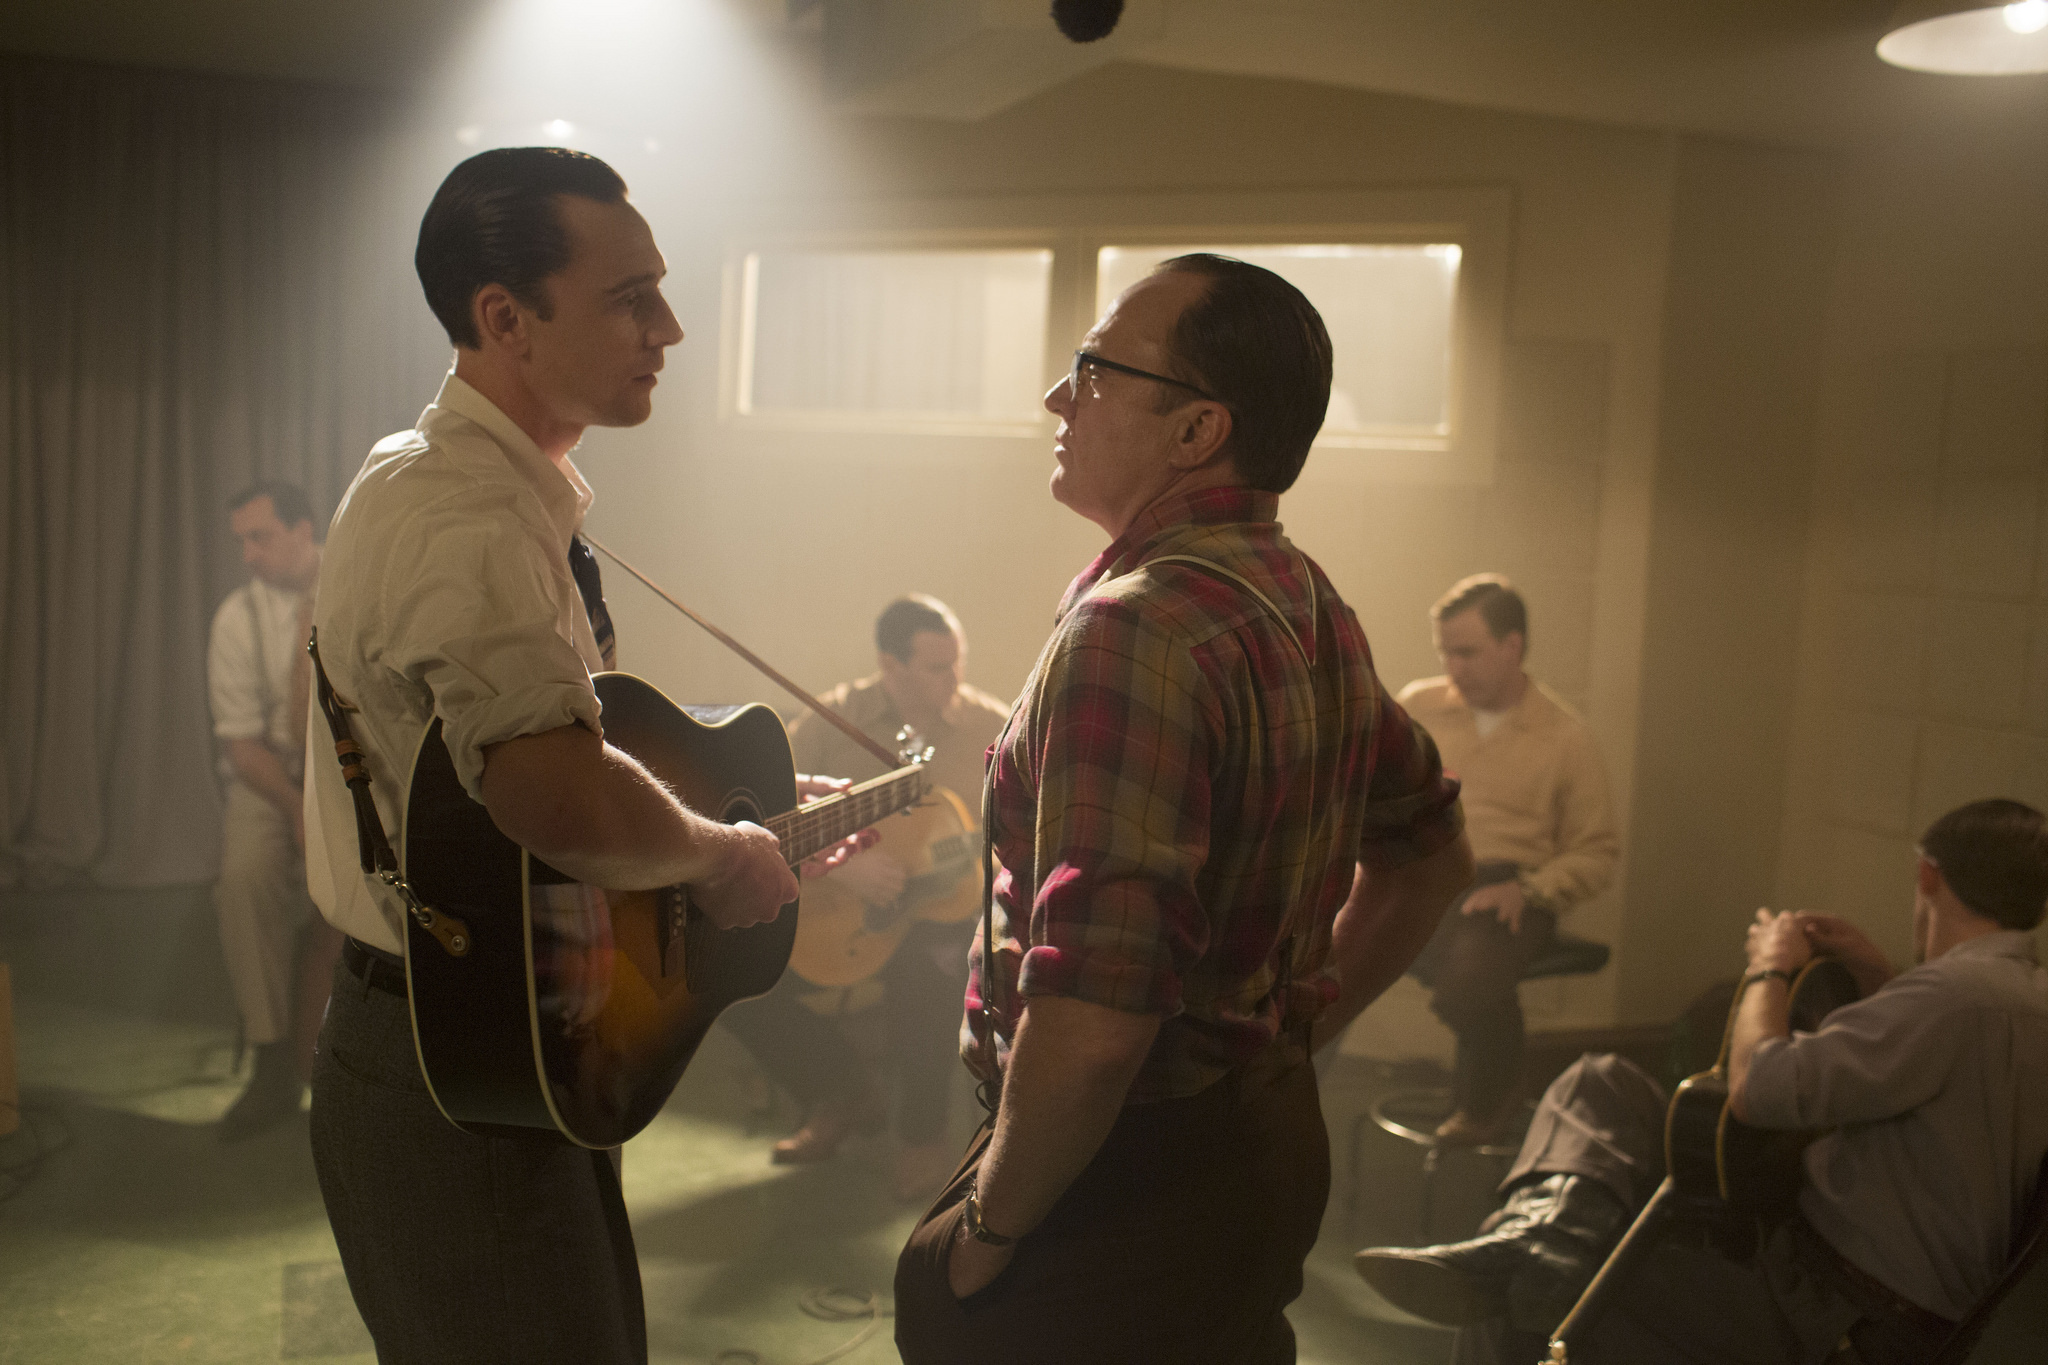 The film festival will open Thursday with a biopic of Hank Williams directed by UVA alumnus Marc Abraham. (Image: Virginia Film Festival)